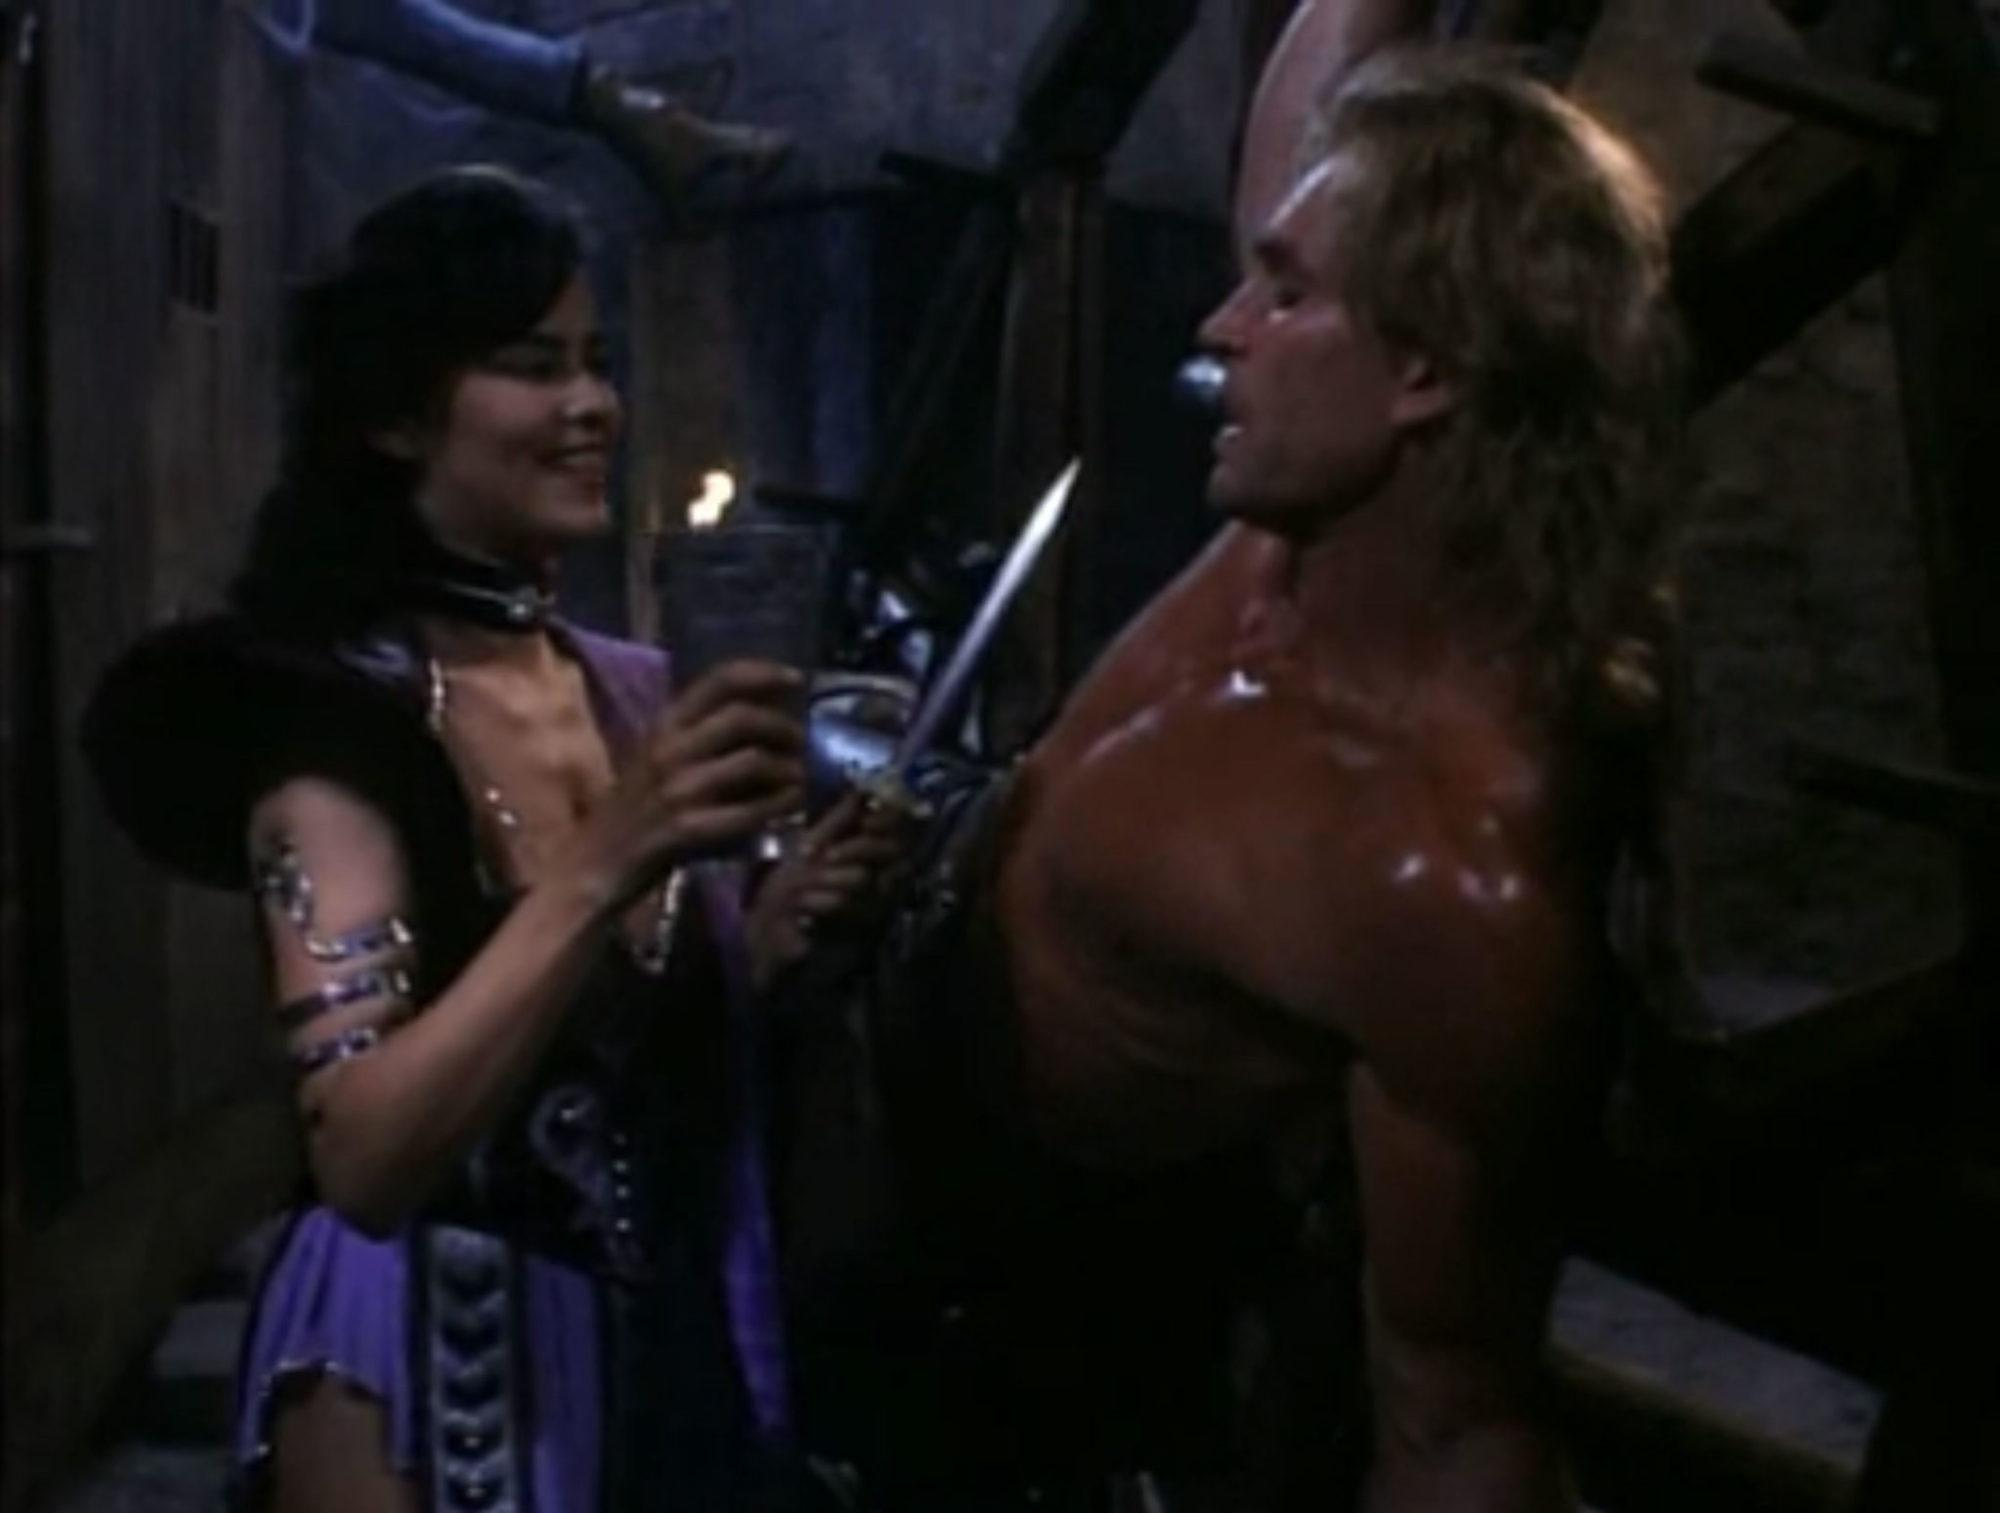 Michelle Moffett in Deathstalker IV